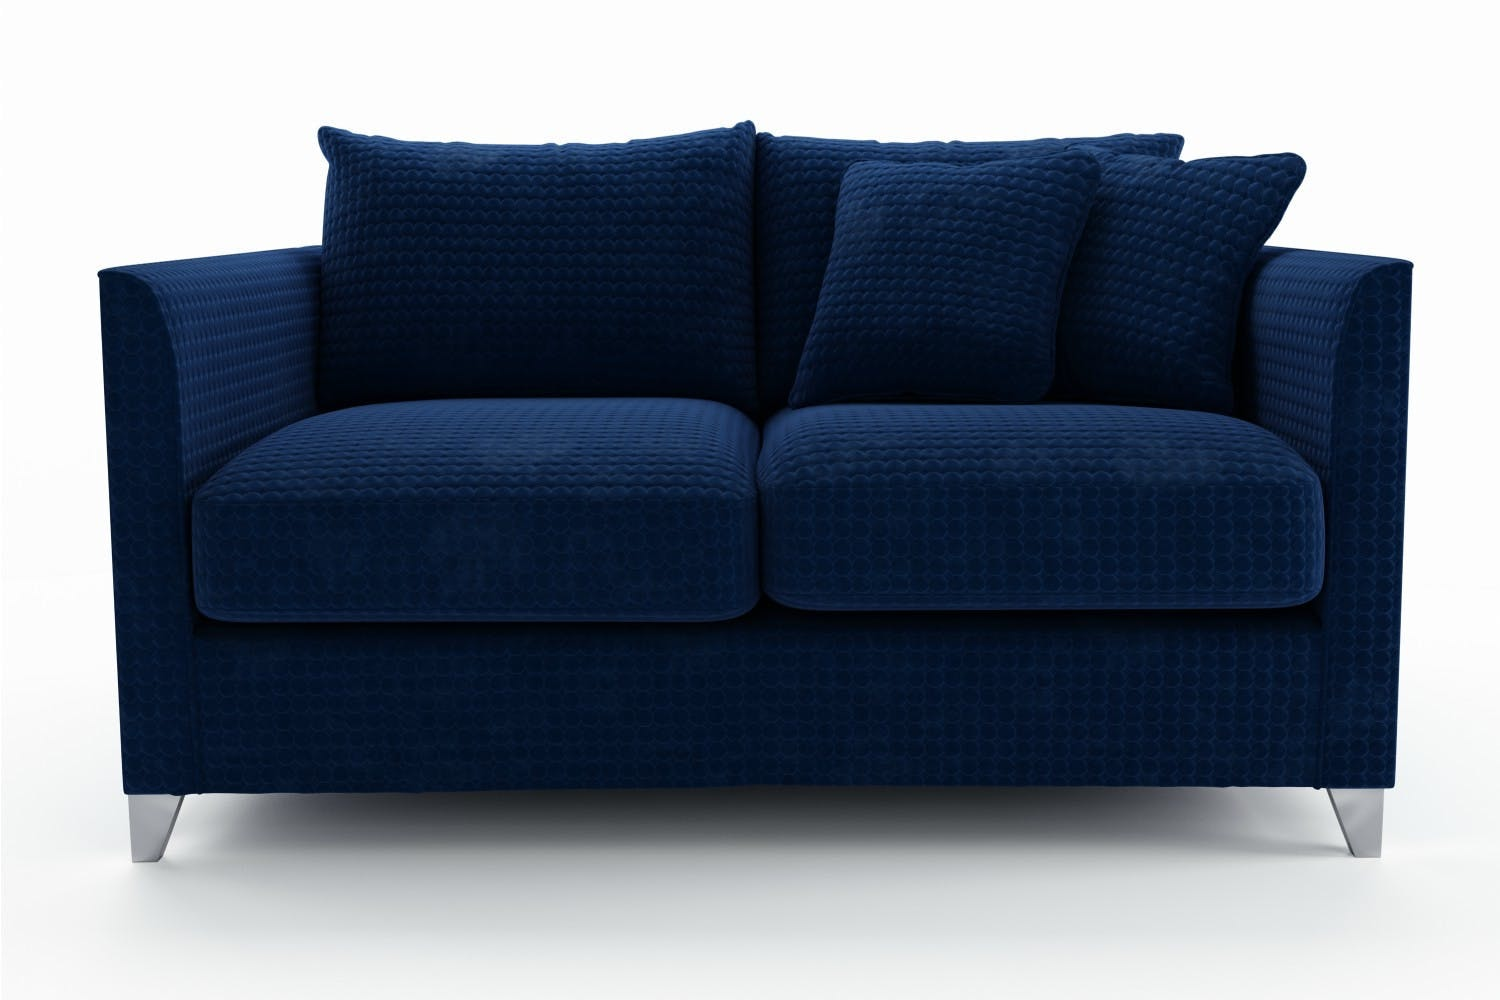 Zoey 2 Seater Sofa | 8 Colour Options